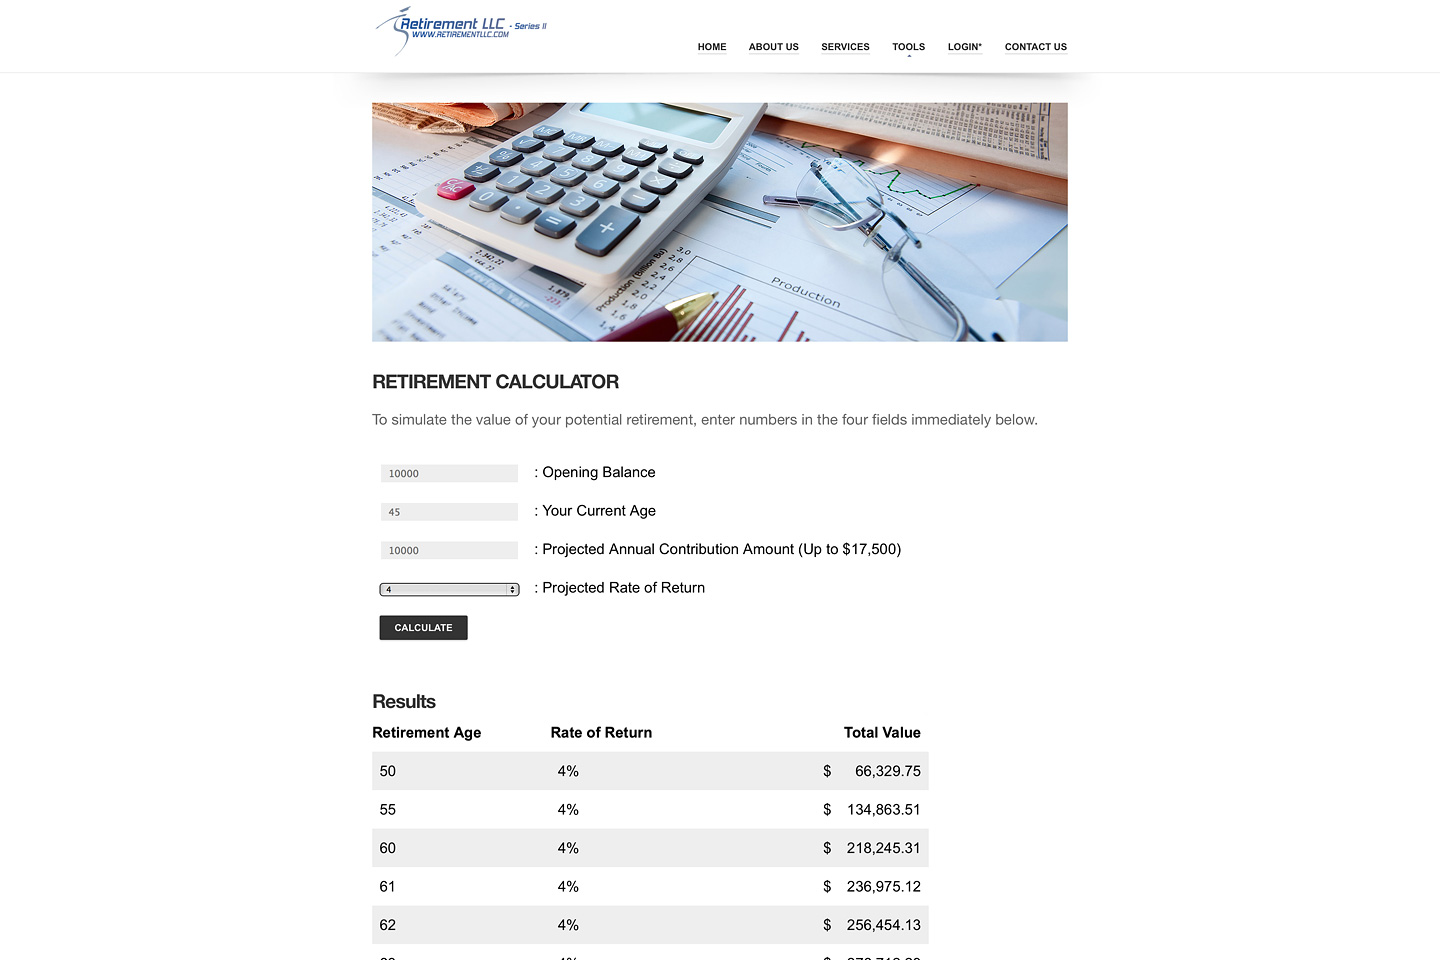 a screen capture of the retirementllc.com retirement calculator, illustrating a sample set of calculator results